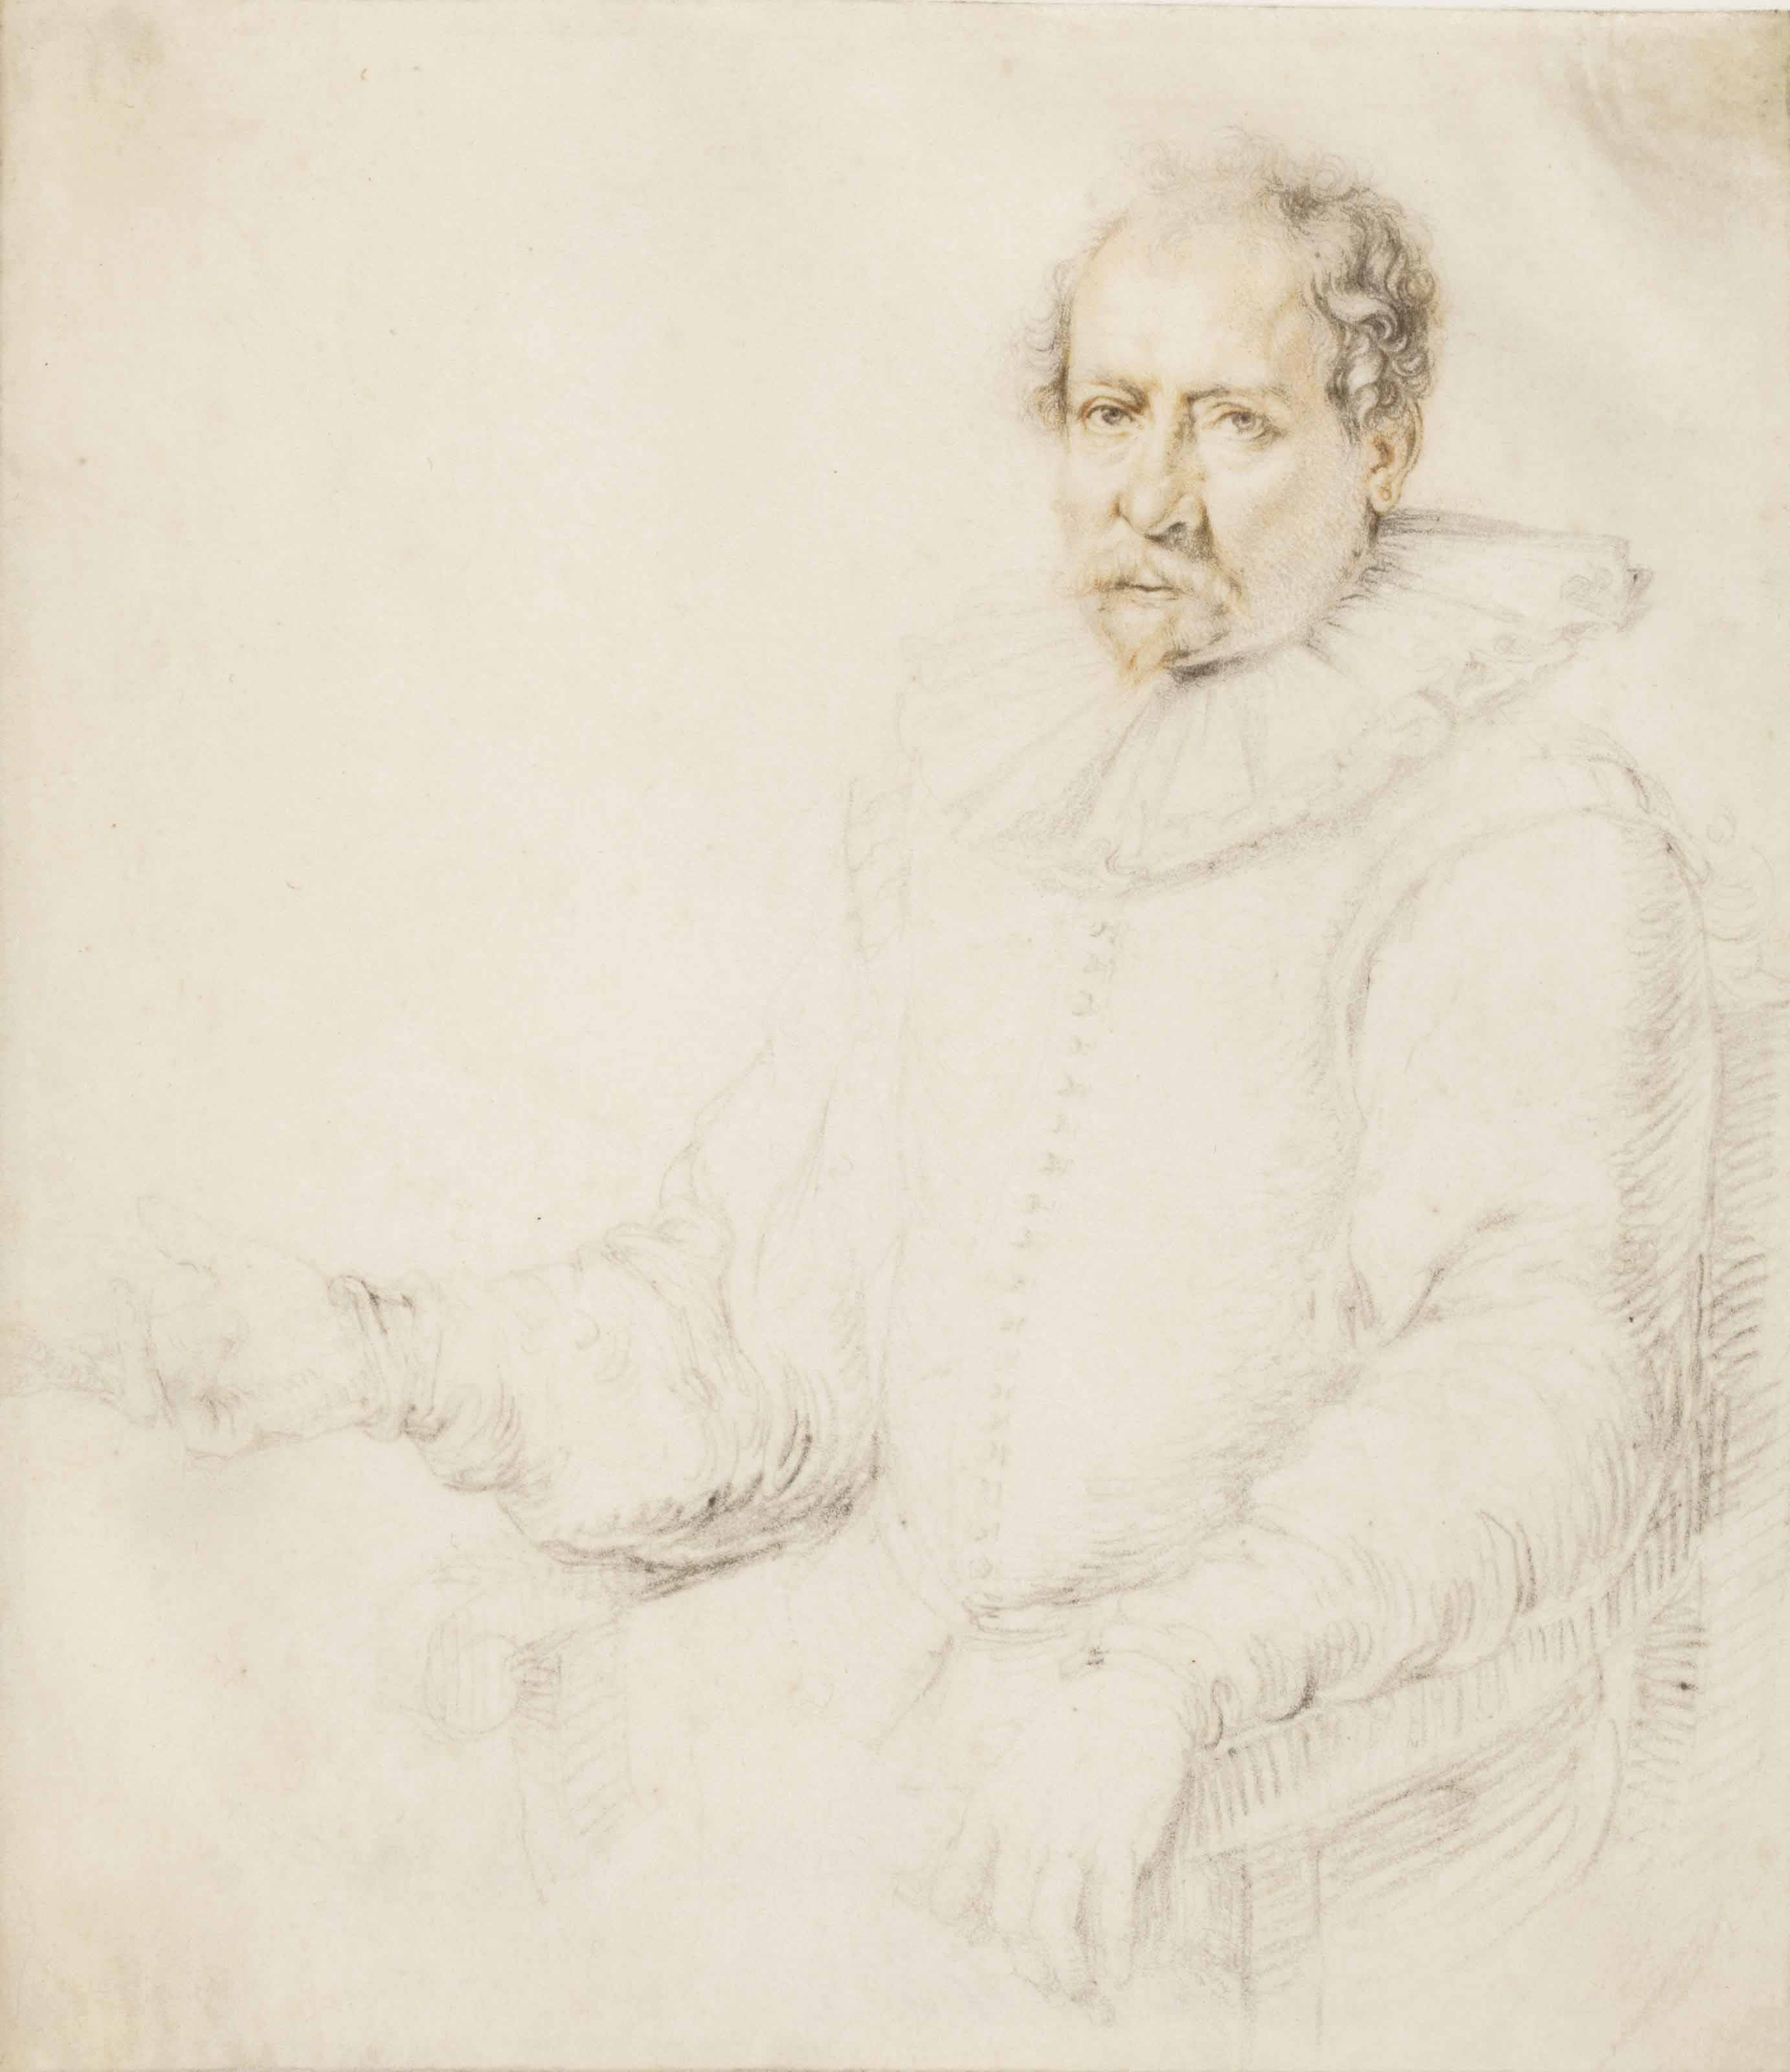 Portrait of a seated man in an armchair